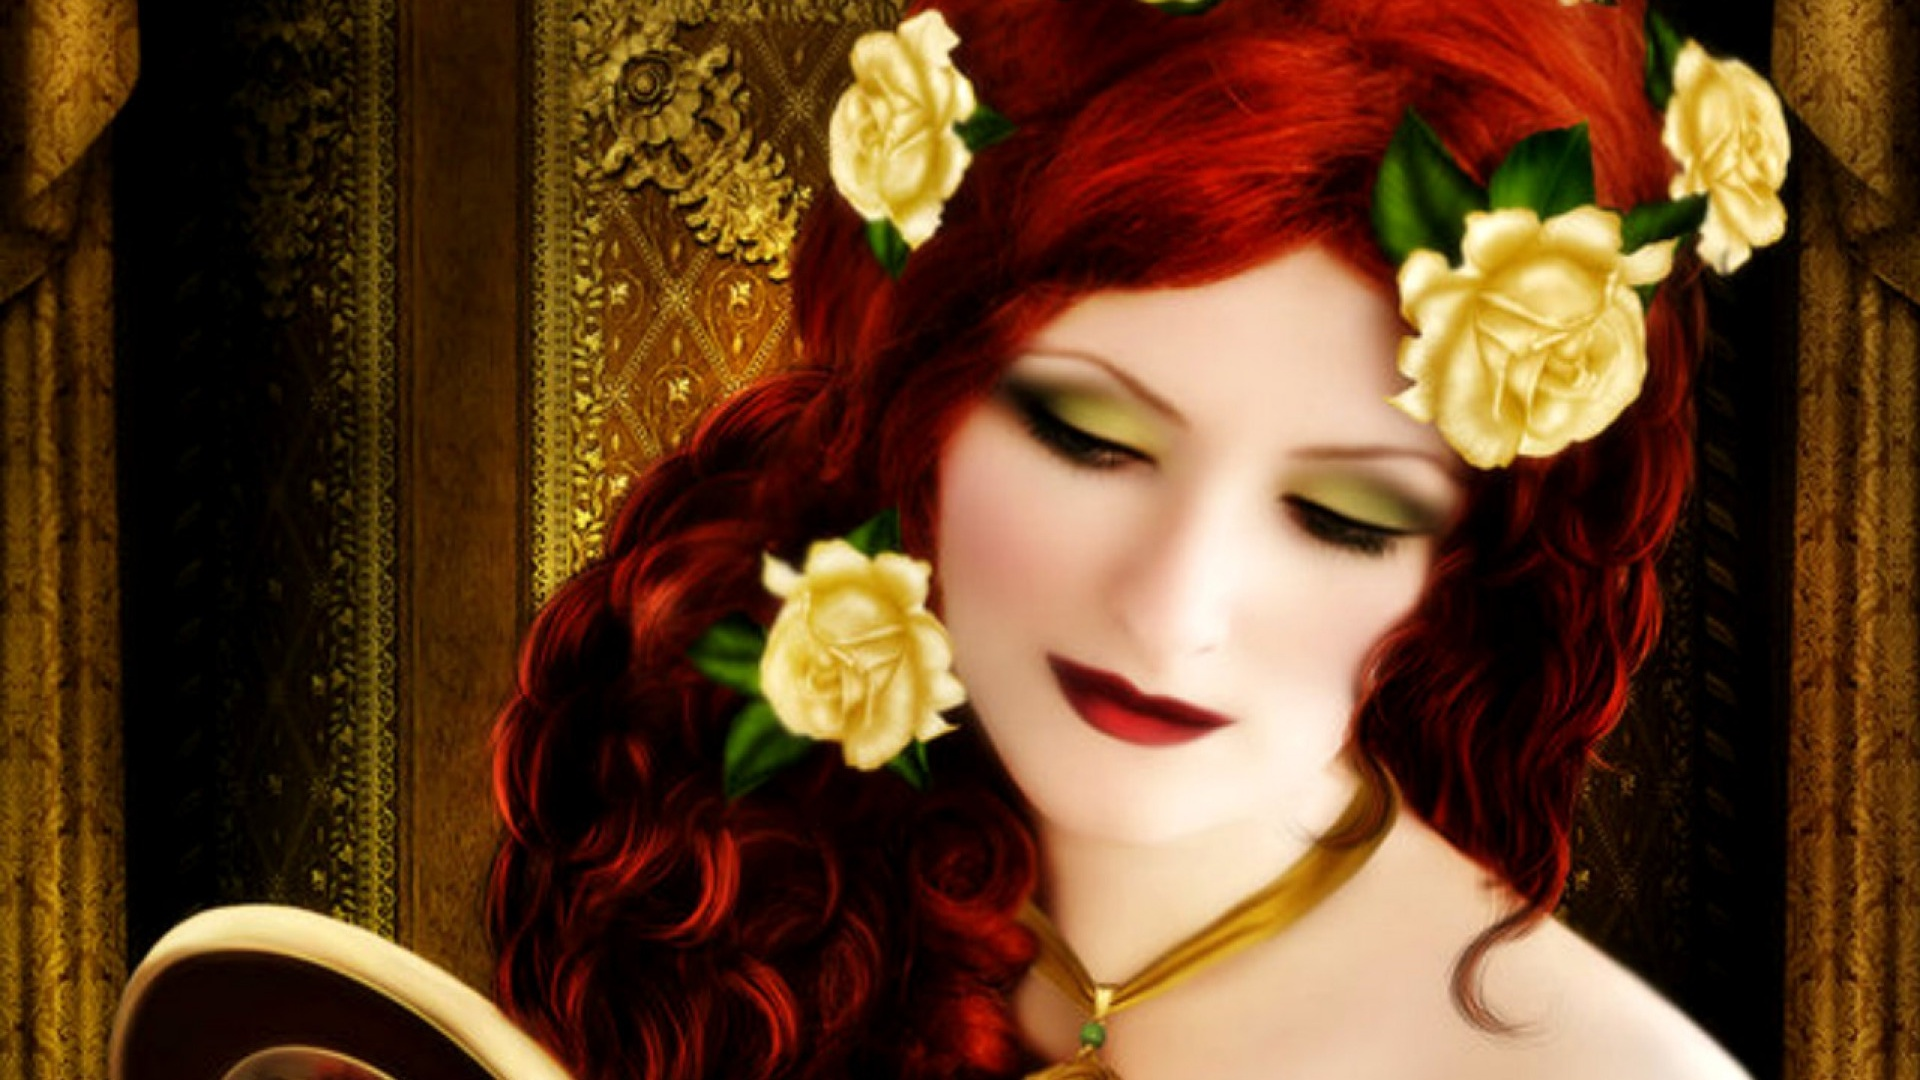 1920x1080 Woman Red Hair With Roses